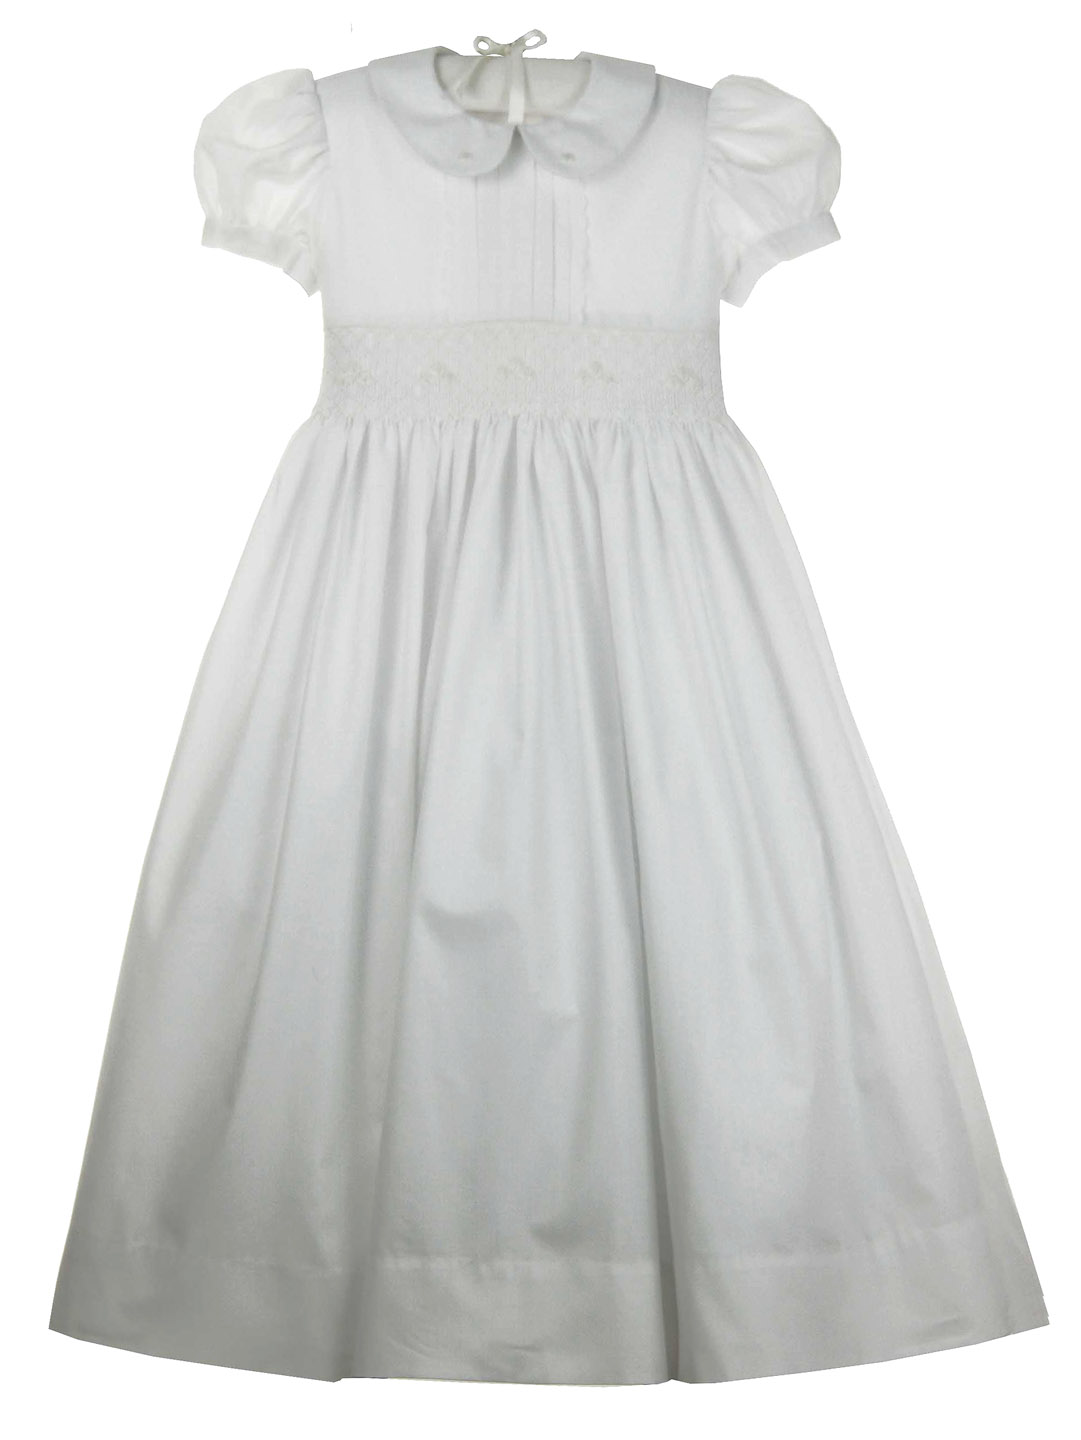 New Marco Amp Lizzy White Batiste Smocked Dress With